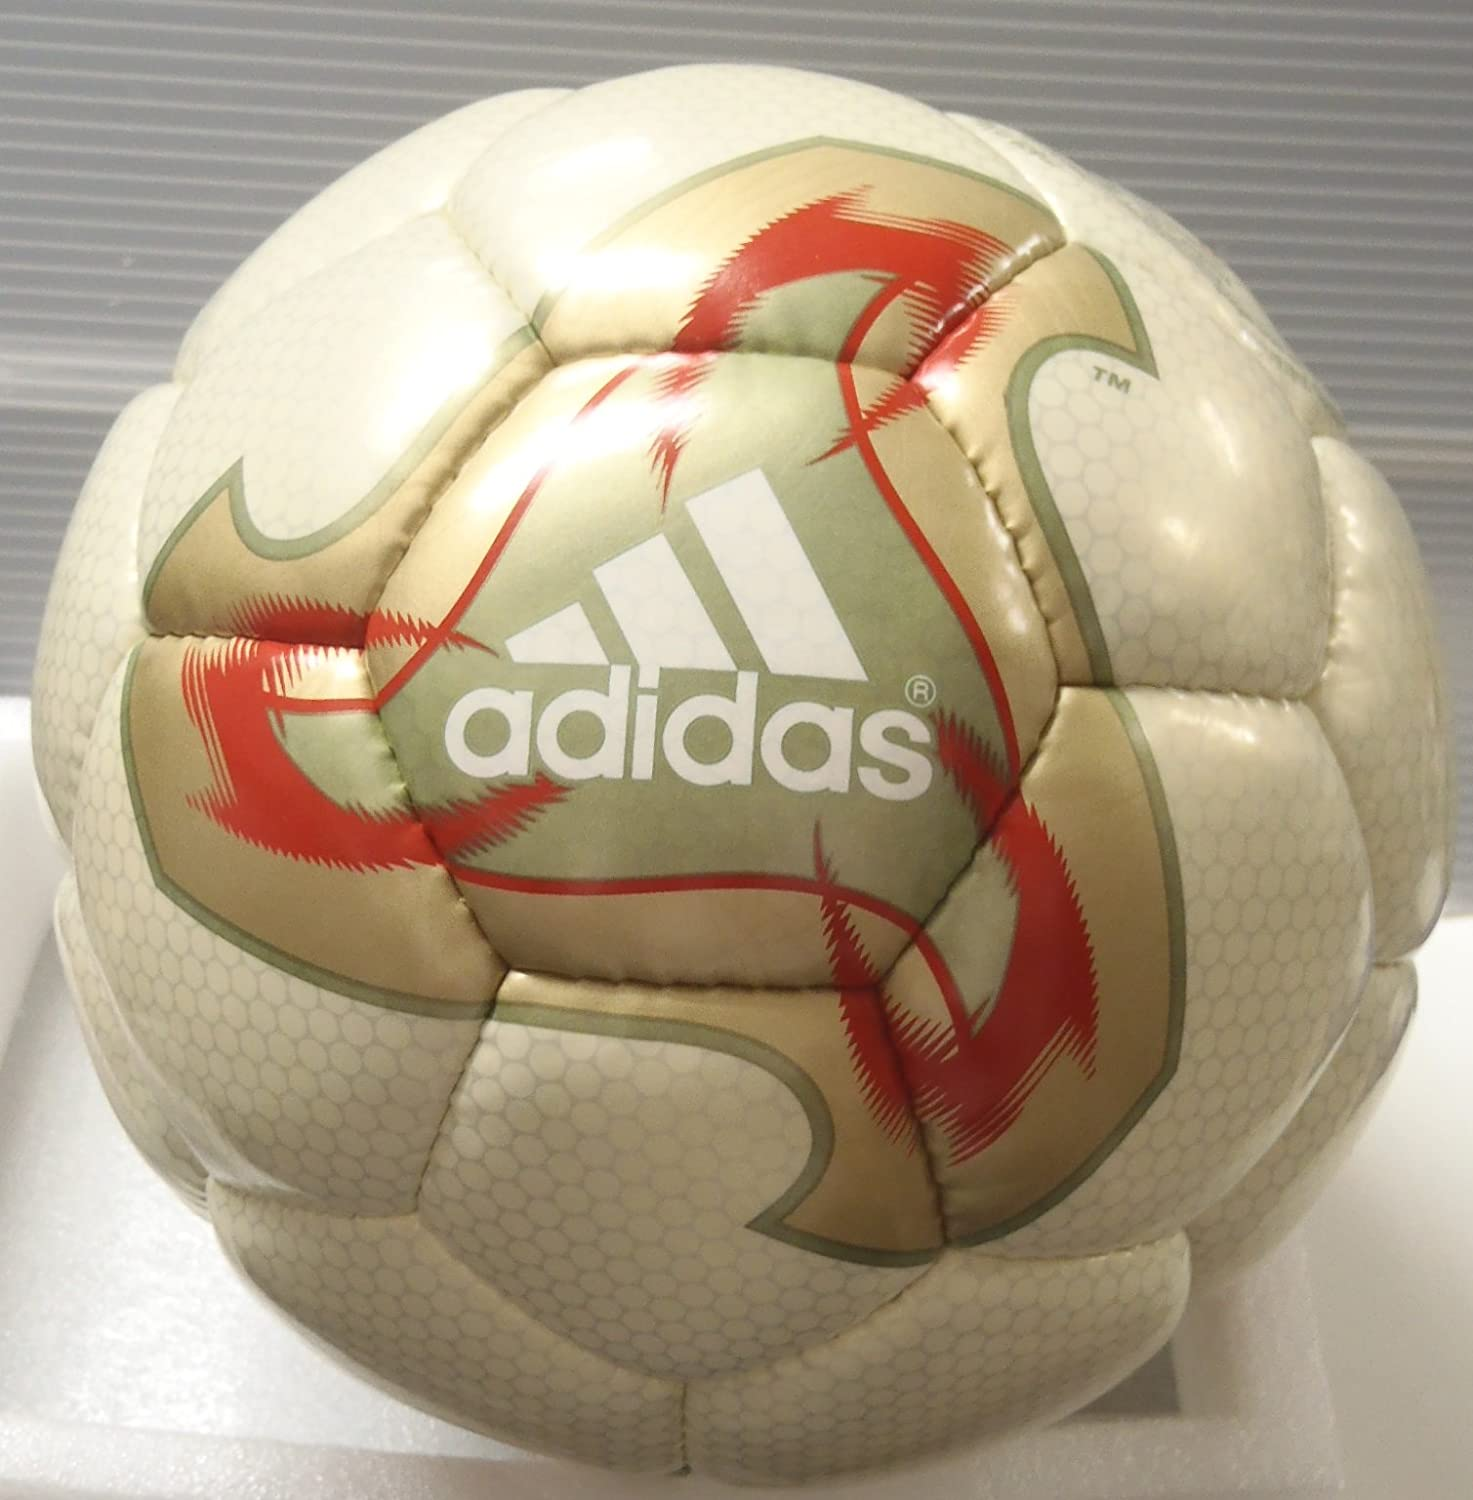 despierta dividendo intencional  Amazon.co.jp: Adidas (Adidas) 2002 FIFA World Cup Official Ball fevernova  fi-banoヴxa: Sports